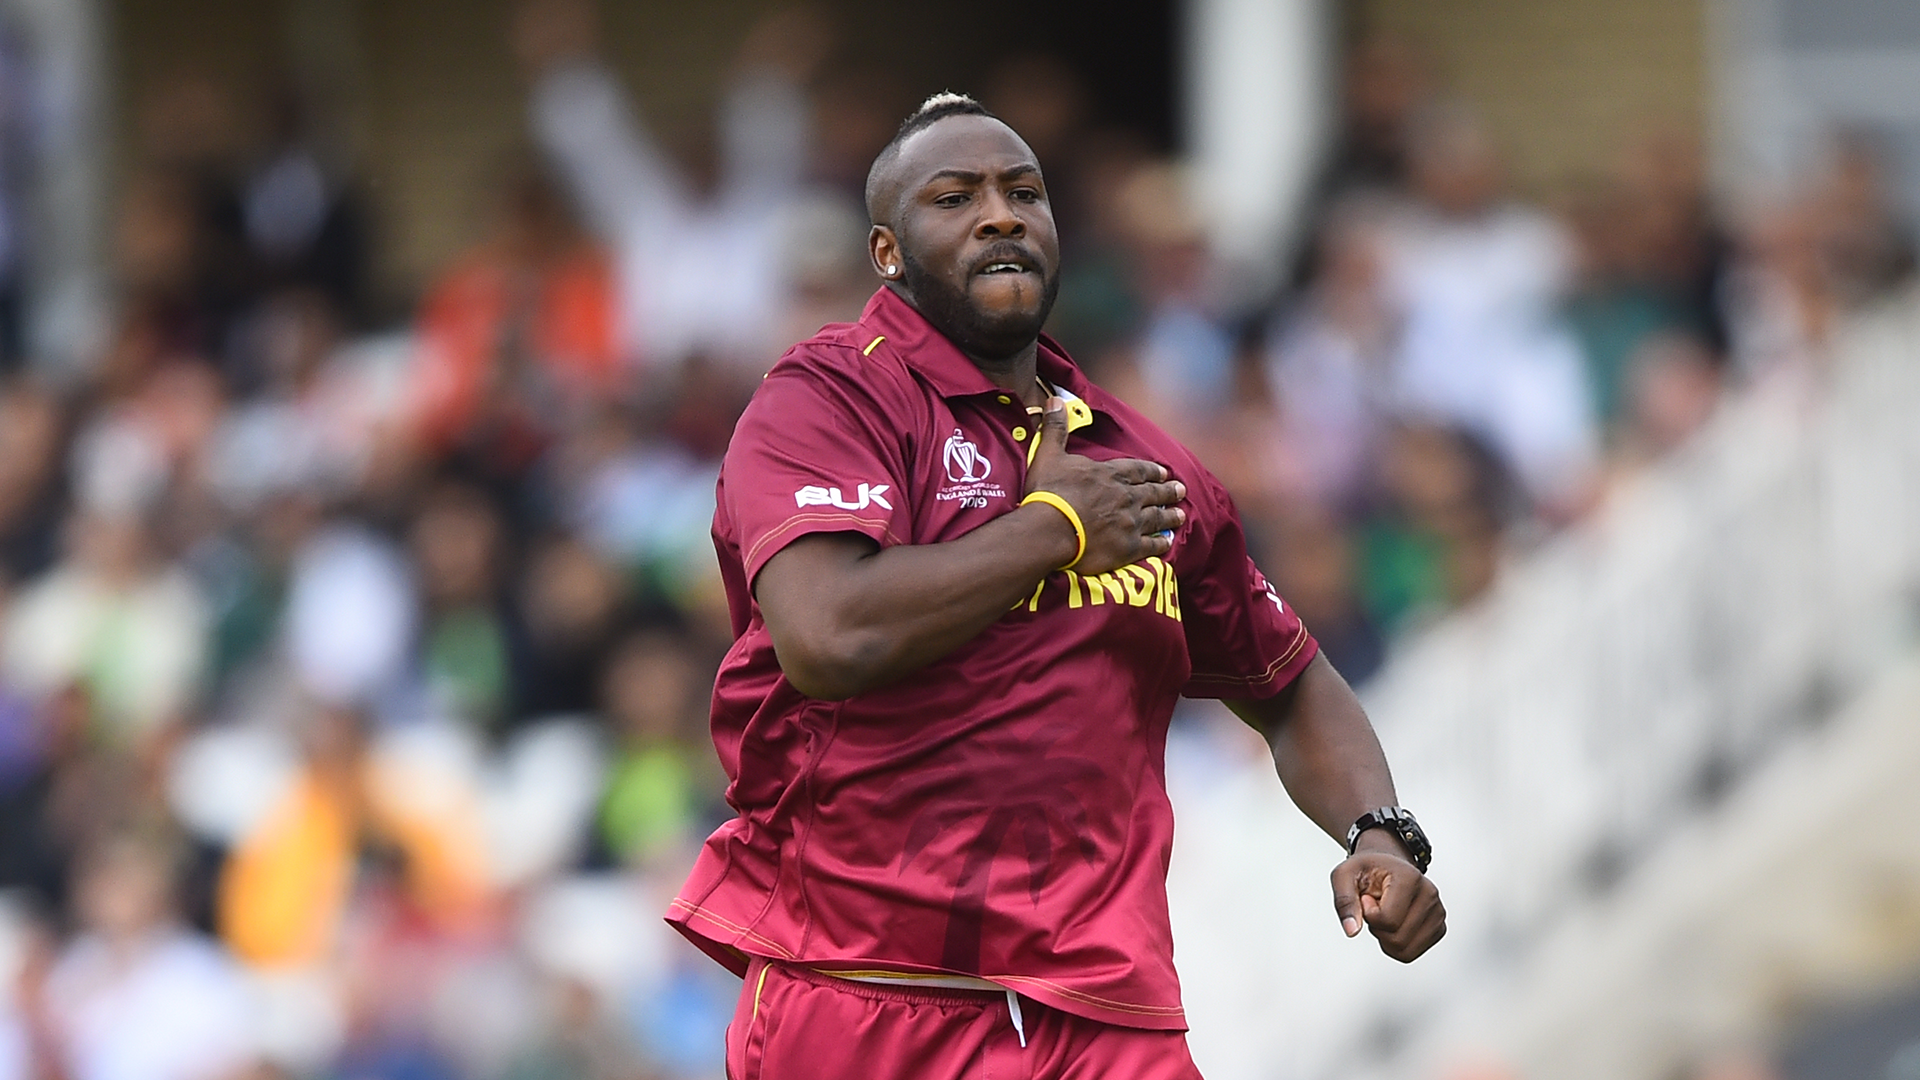 Russell Returns As Windies Name Provisional Squad For Trio Of T20i Series